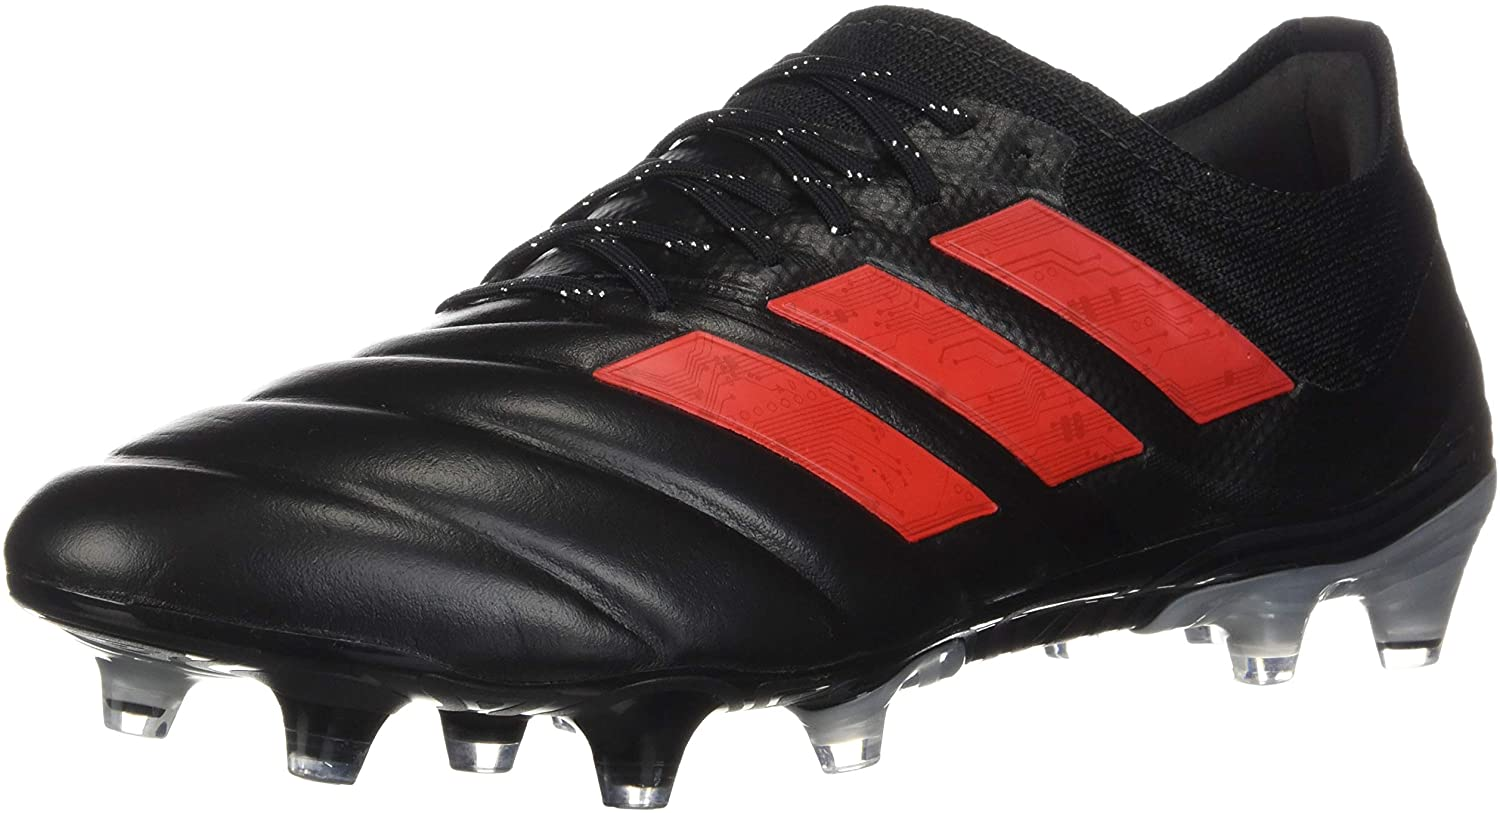 adidas Copa 19.1 FG Cleat - Men's Soccer Black Red